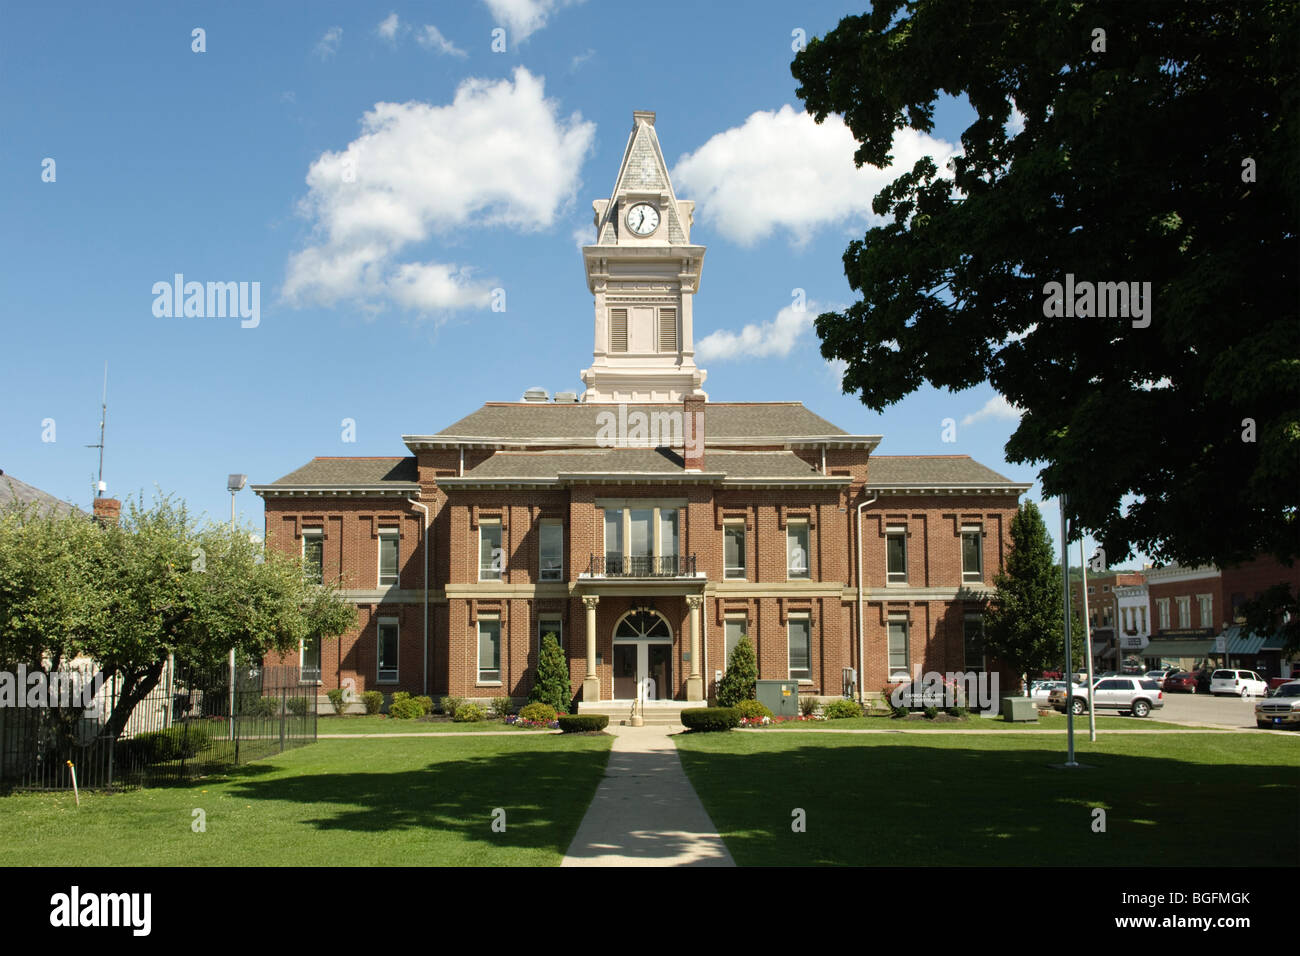 Carroll County Courthouse in Carrollton Kentucky Stock Photo